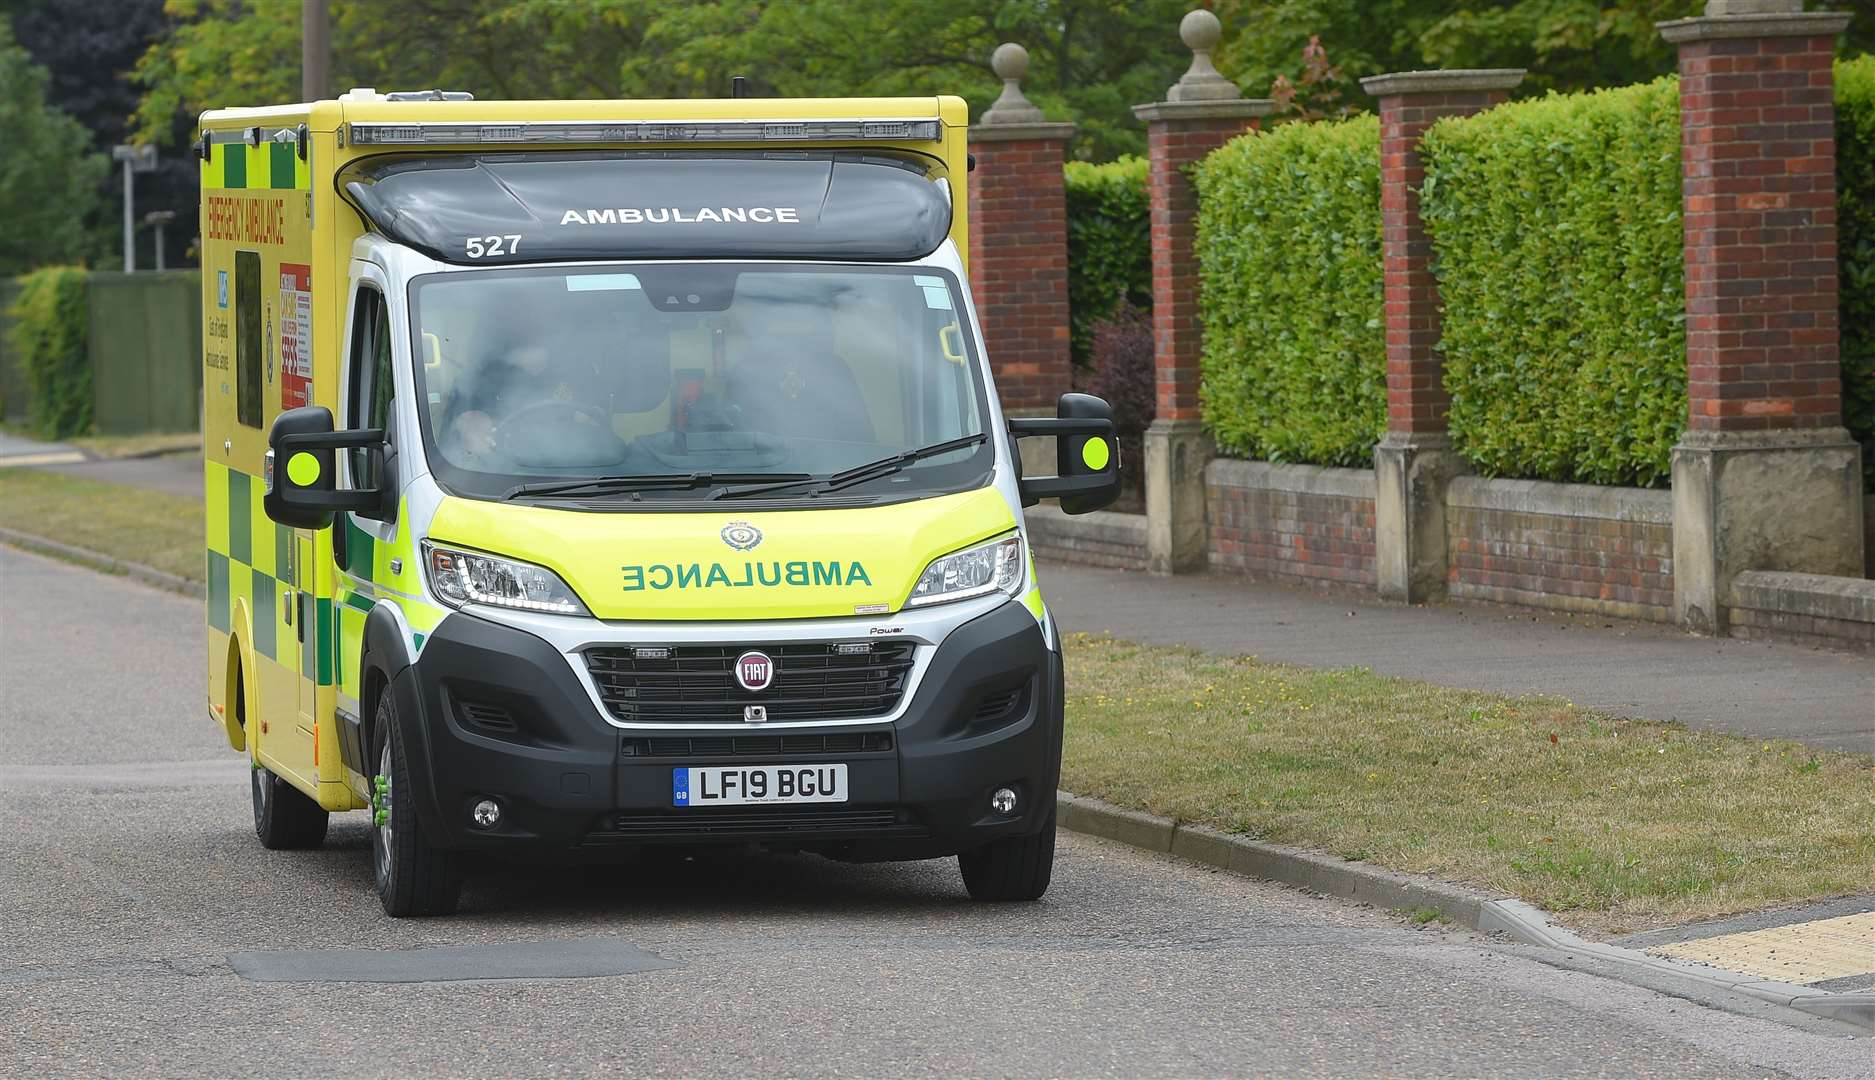 Concern about ambulances kept waiting